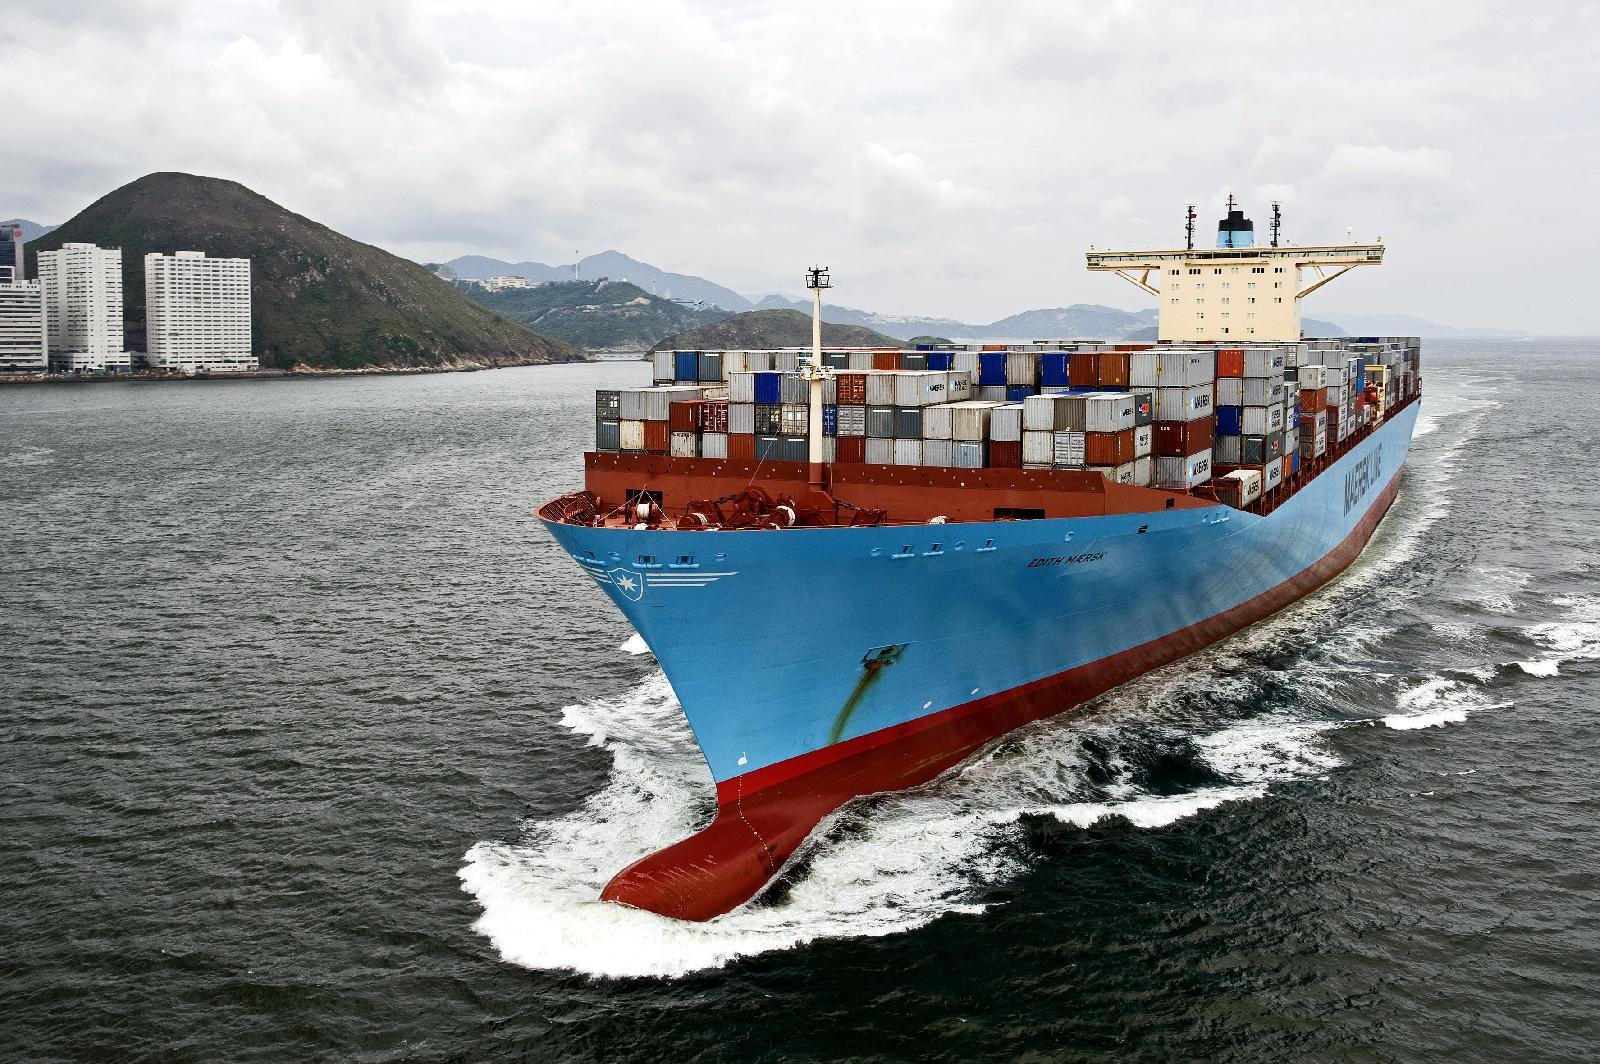 Maersk containership docks again at New Orleans with new 2M service